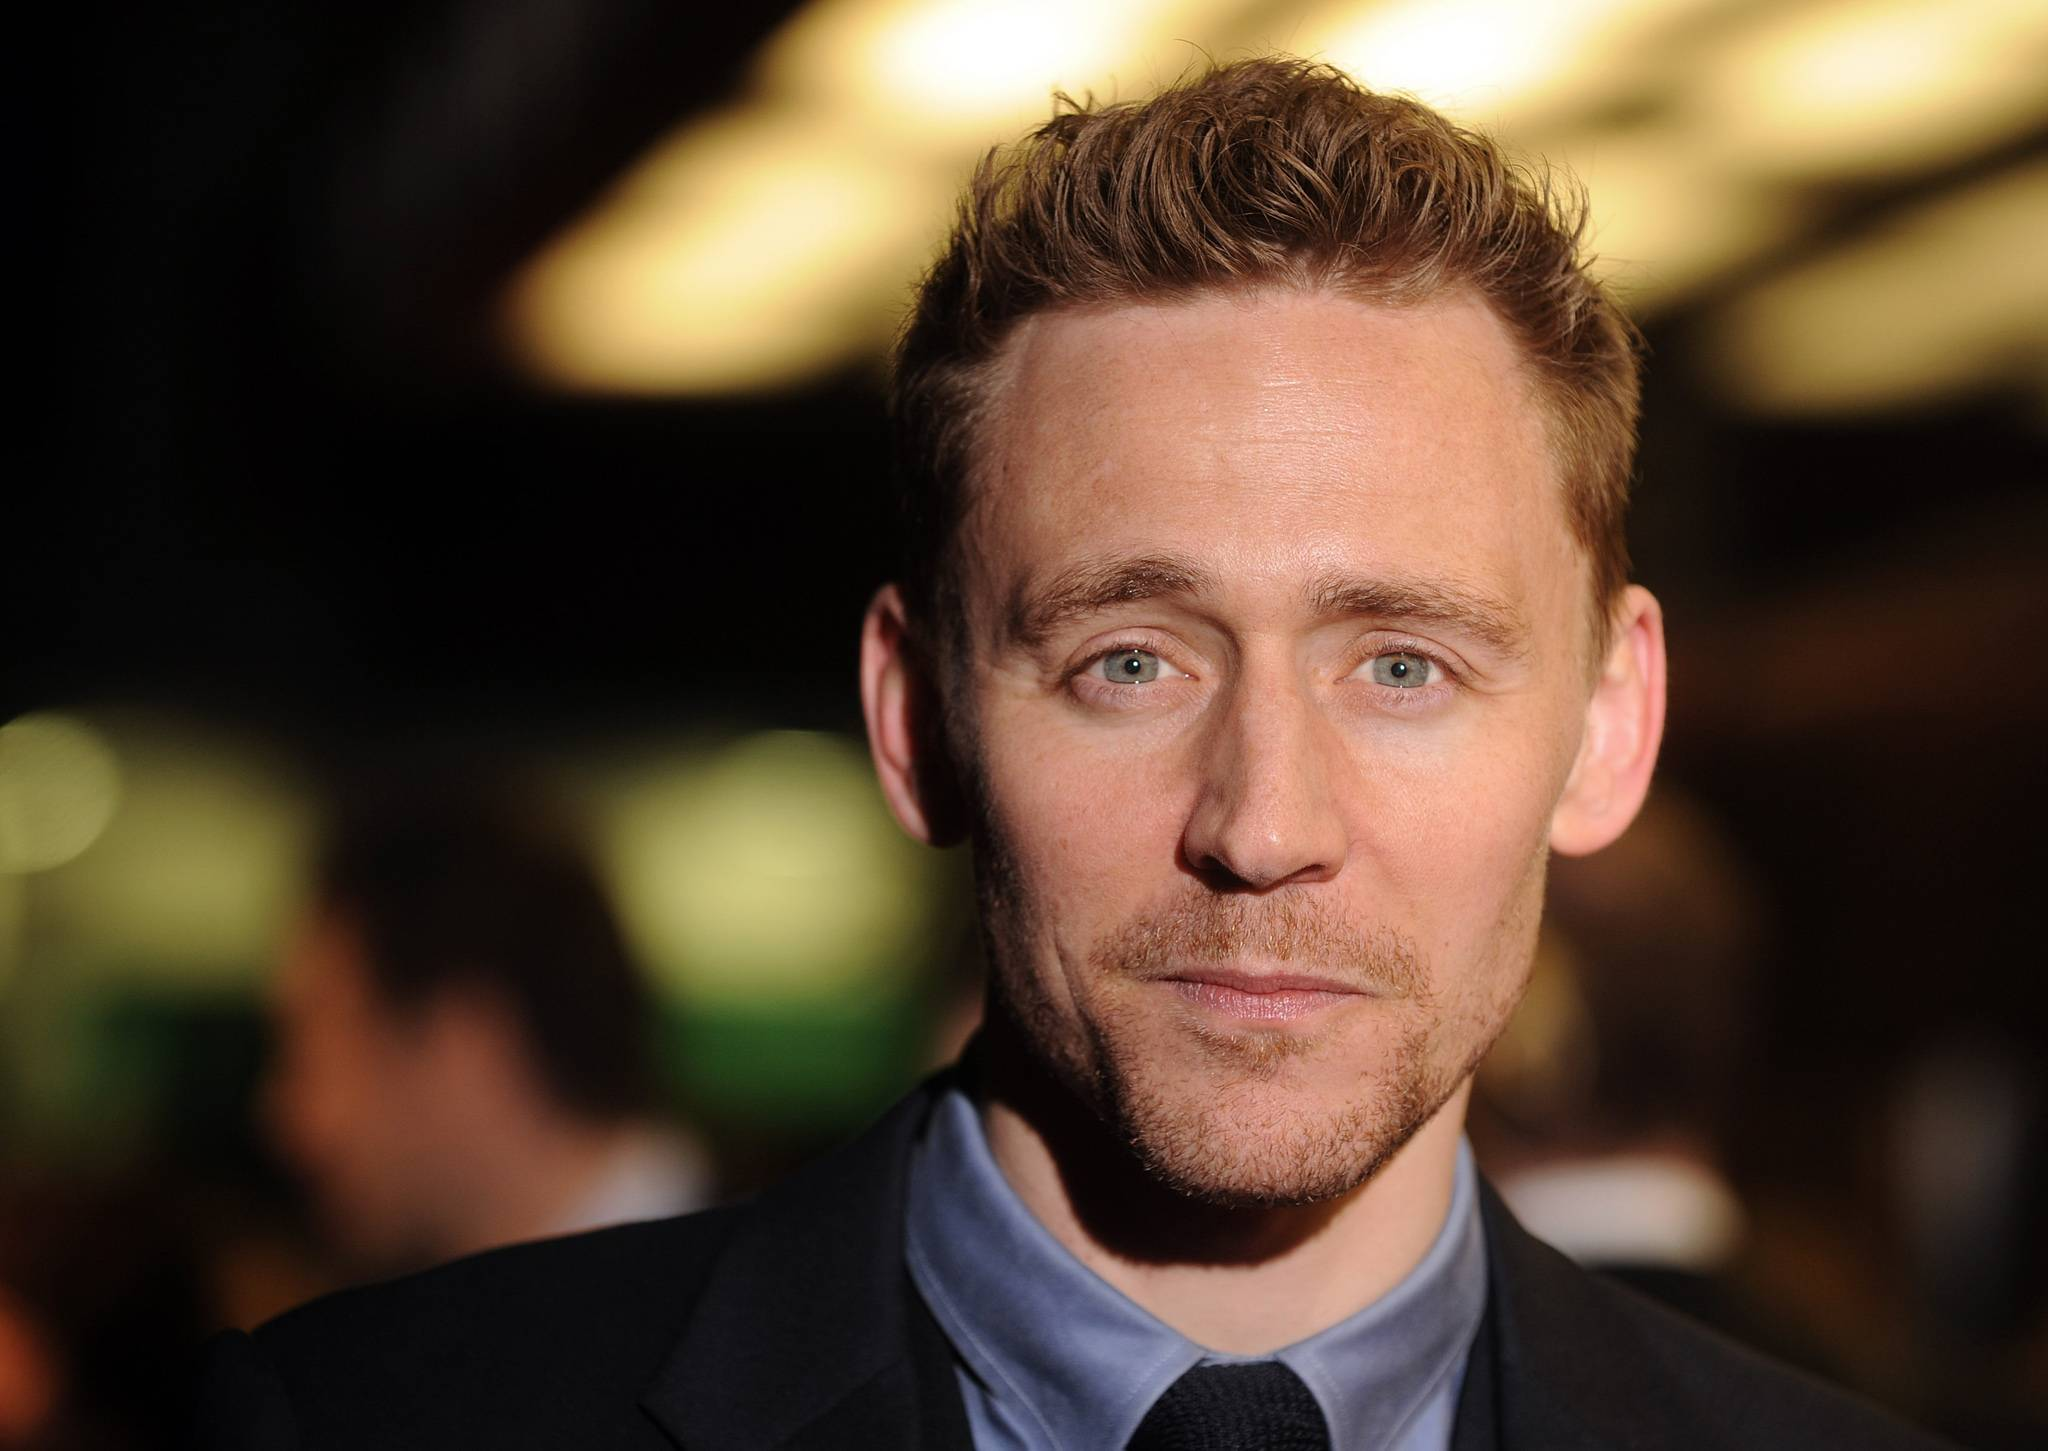 Tom Hiddleston Wallpapers High Resolution And Quality Download